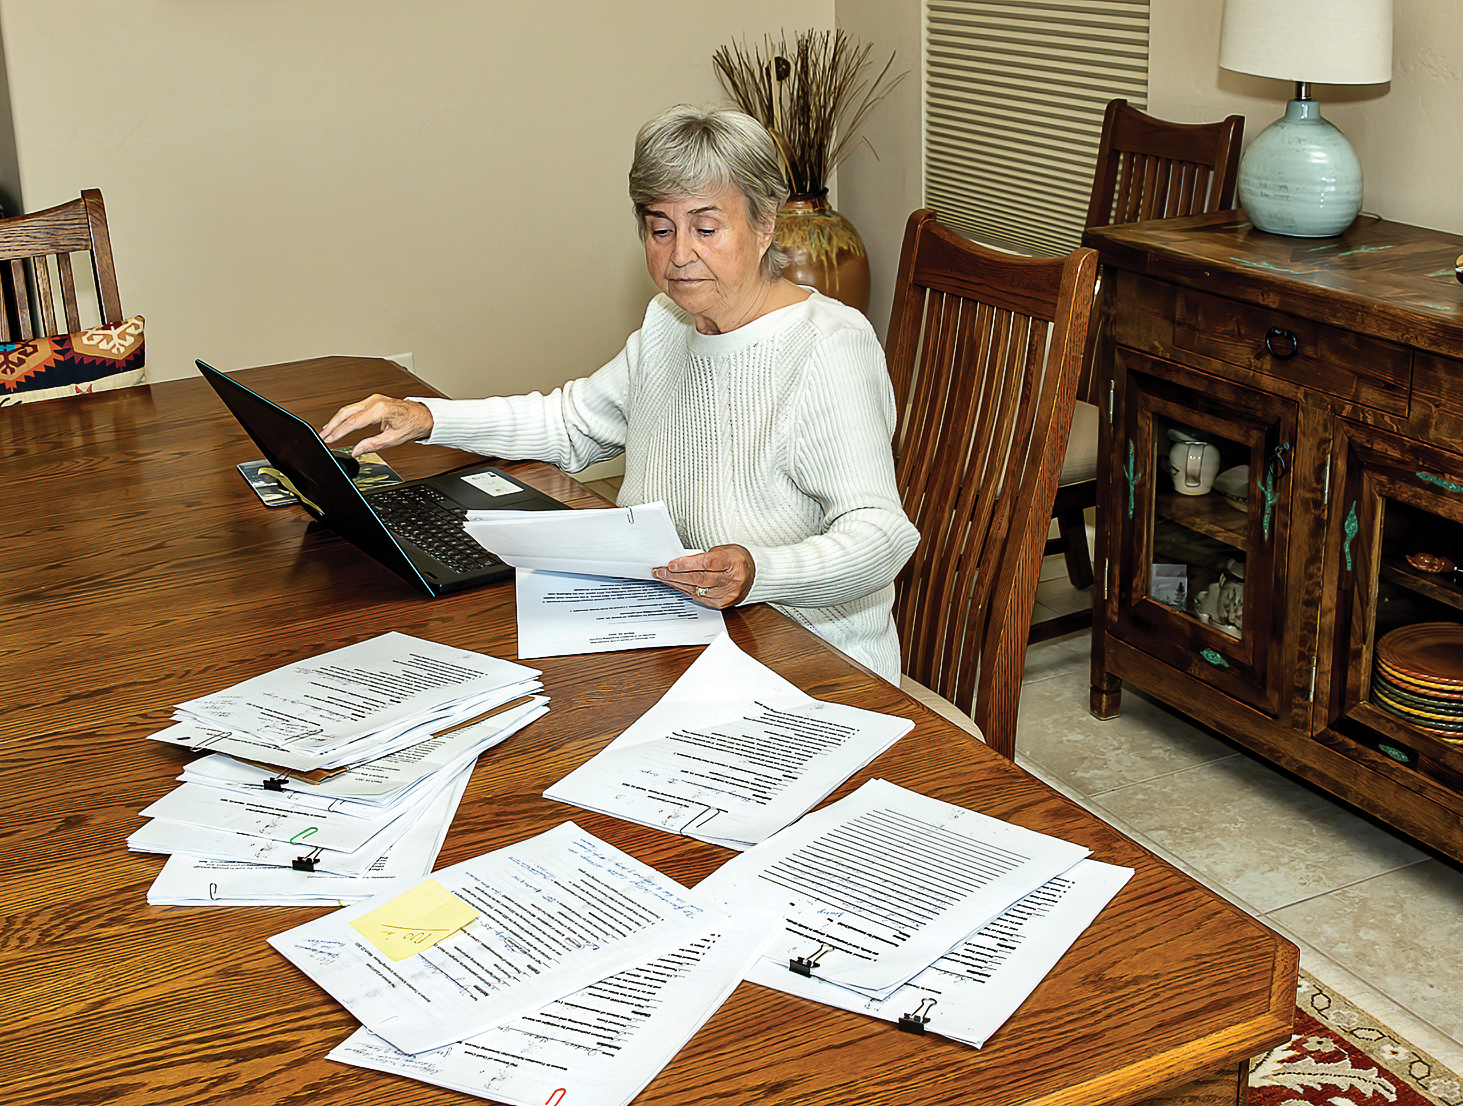 Screening team member Marilyn Burkstrand reviews applications, both online and in hard copy, to make her recommendation for which women should be scheduled for an interview. (Photo by Jim Burkstrand)